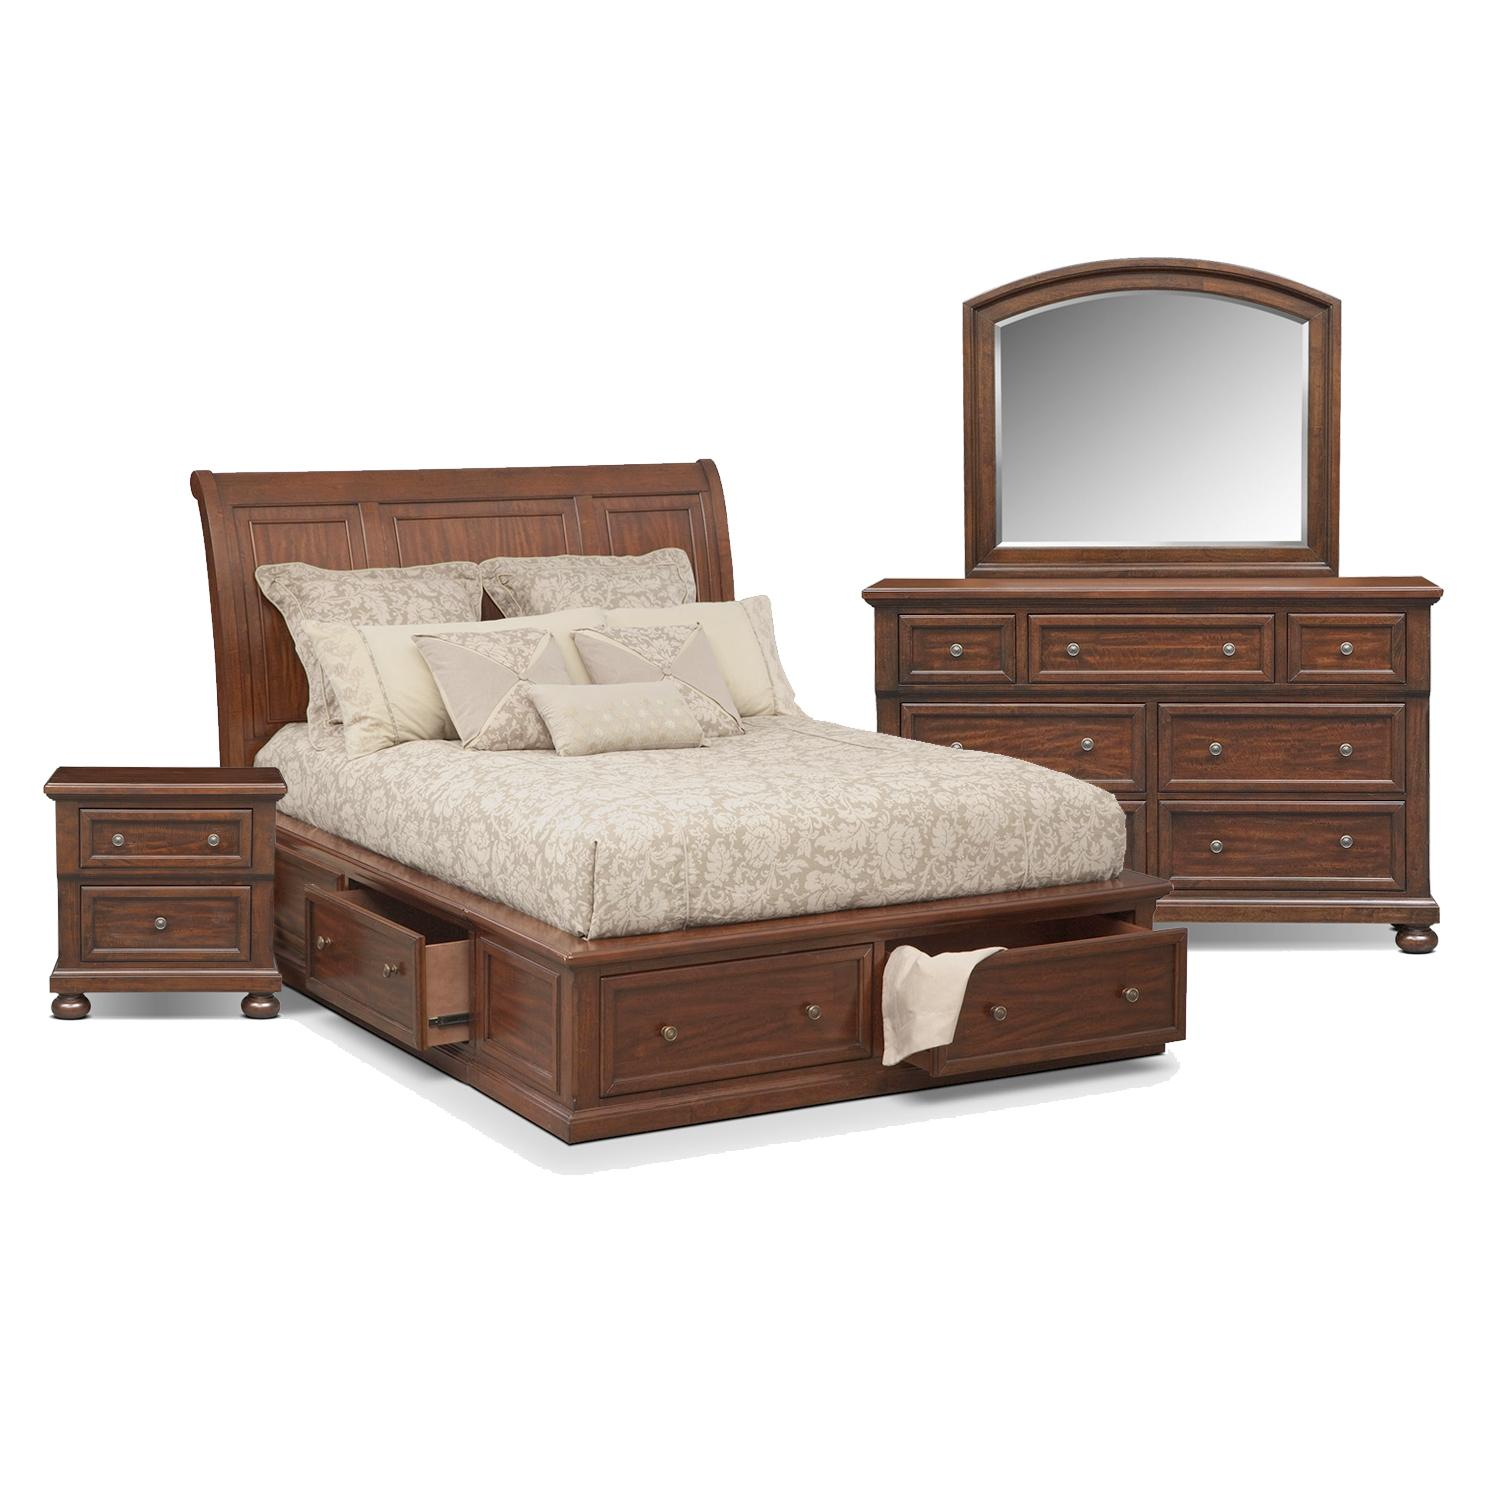 Bedroom Set Queen Black